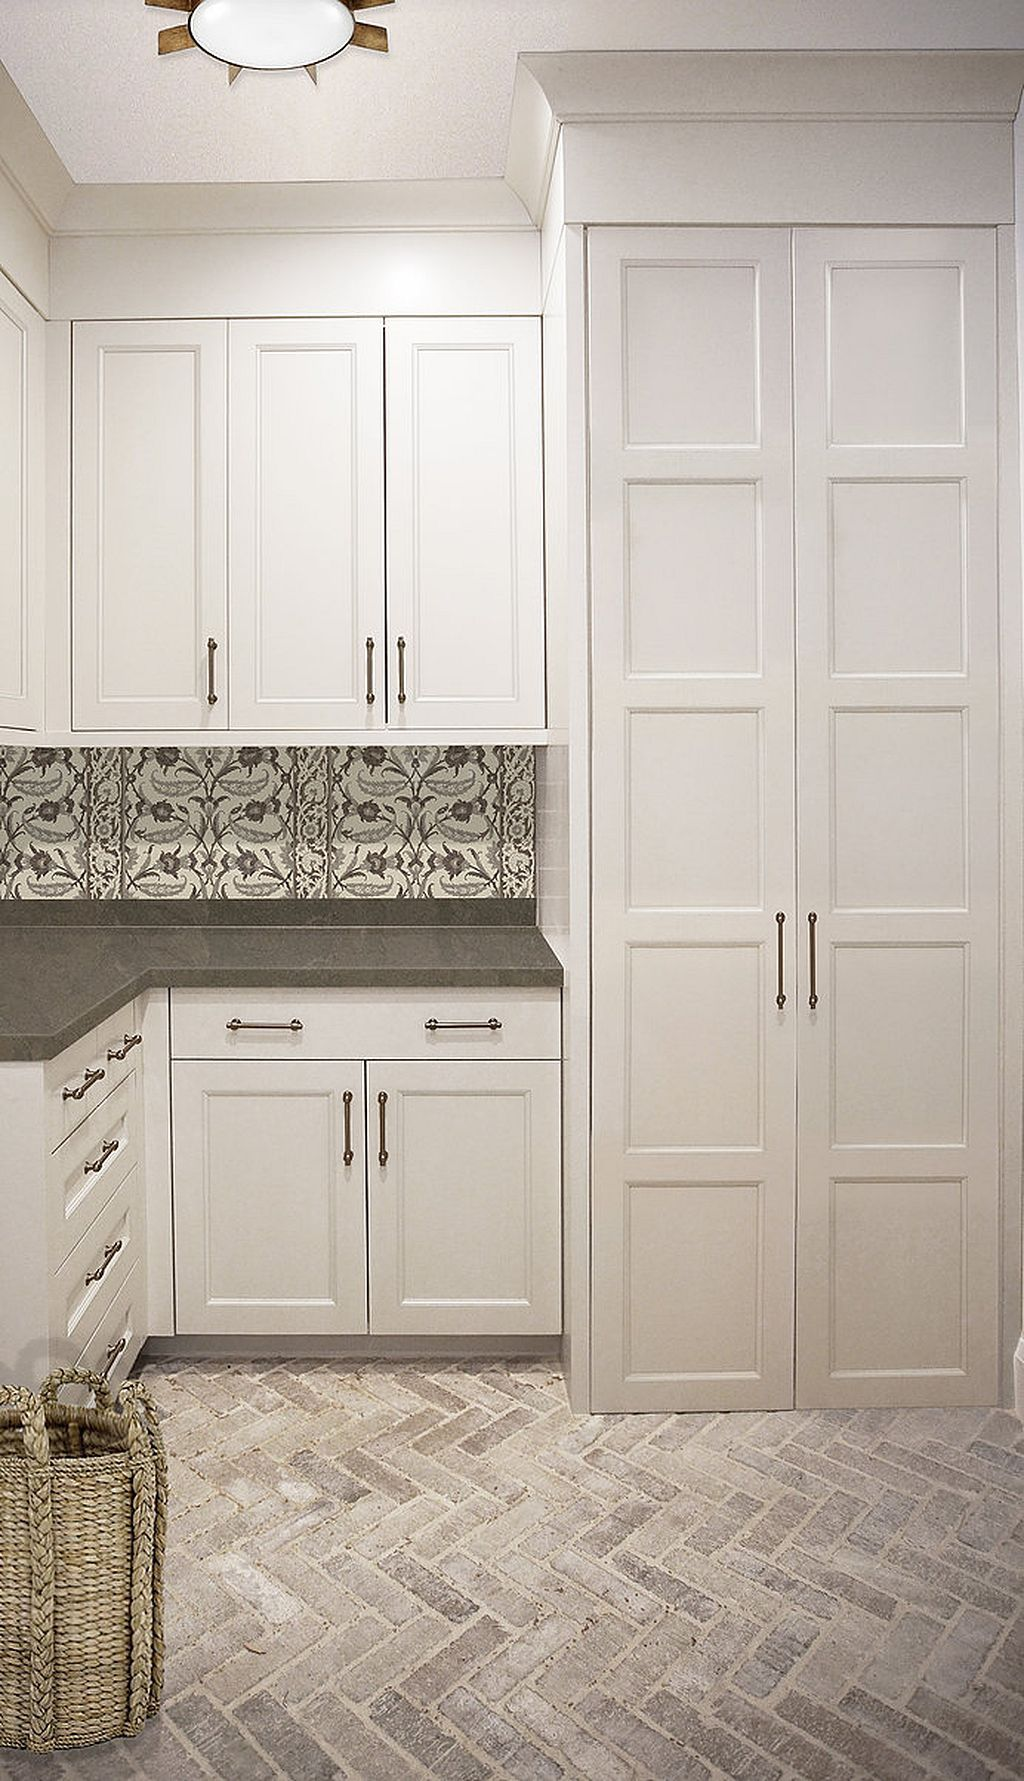 Cool 90+ Laundry Room Cabinet Ideas https://pinarchitecture.com/90 ...